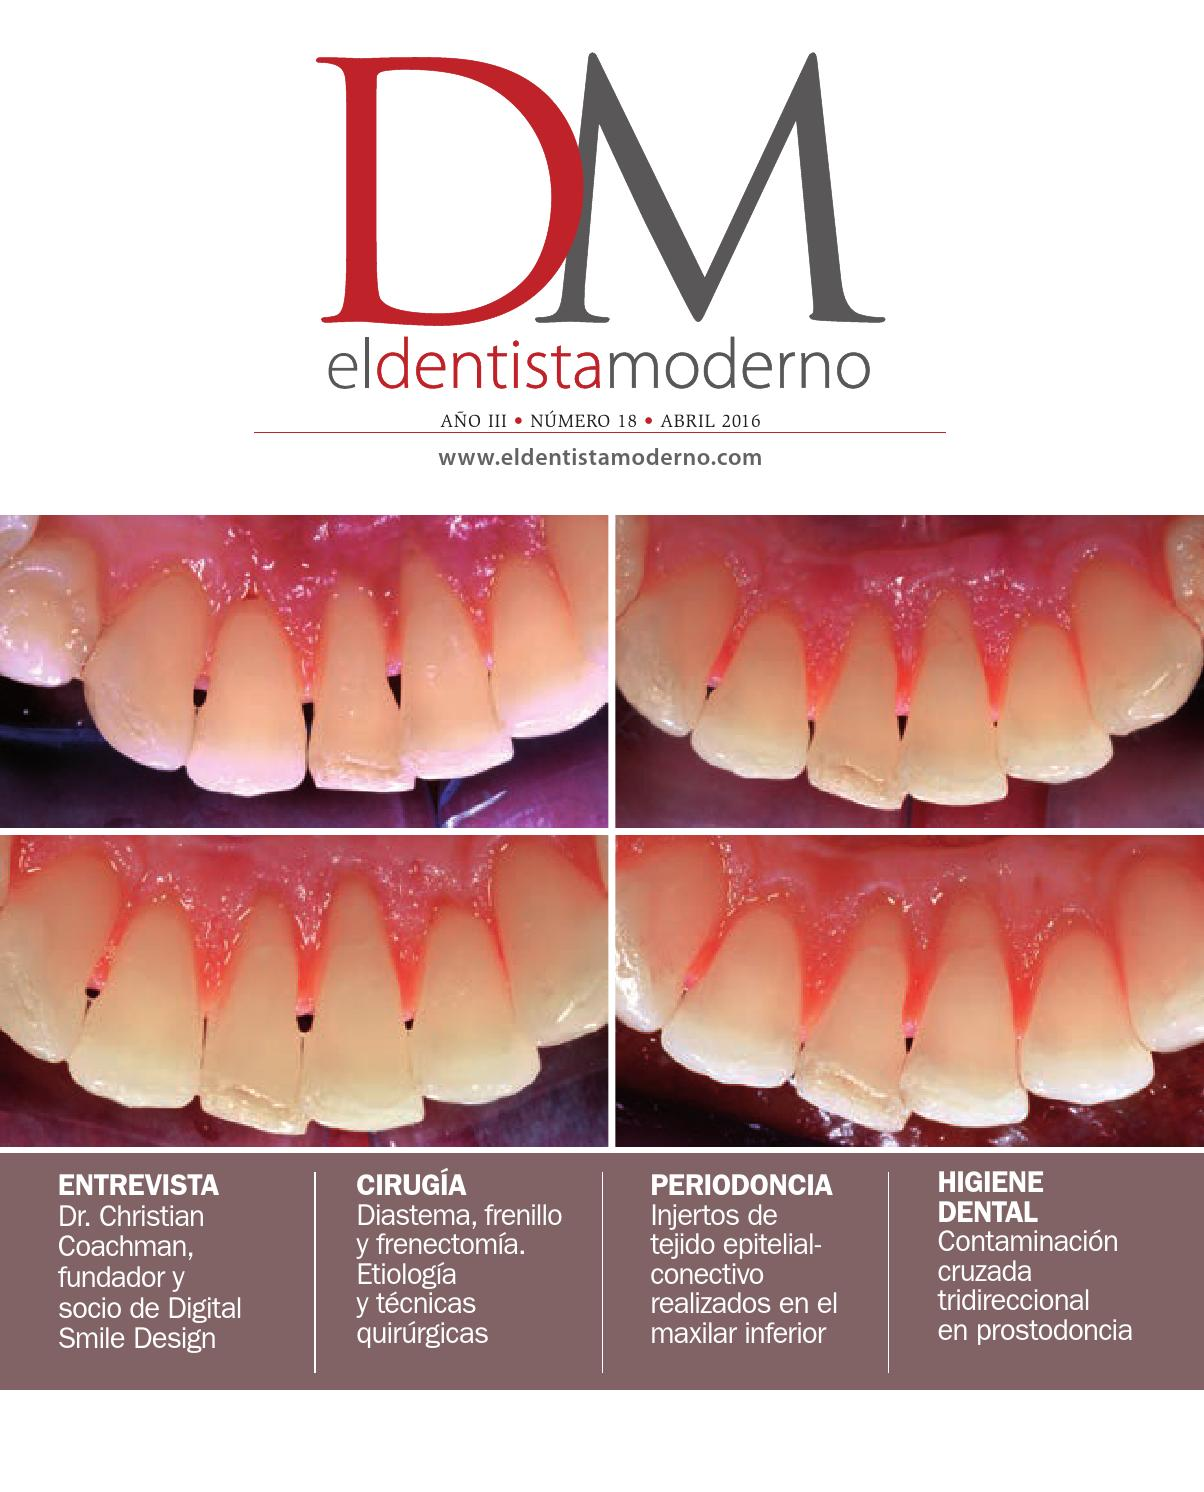 El Dentista Moderno nº 18 by Digital Newspapers S.L. - issuu